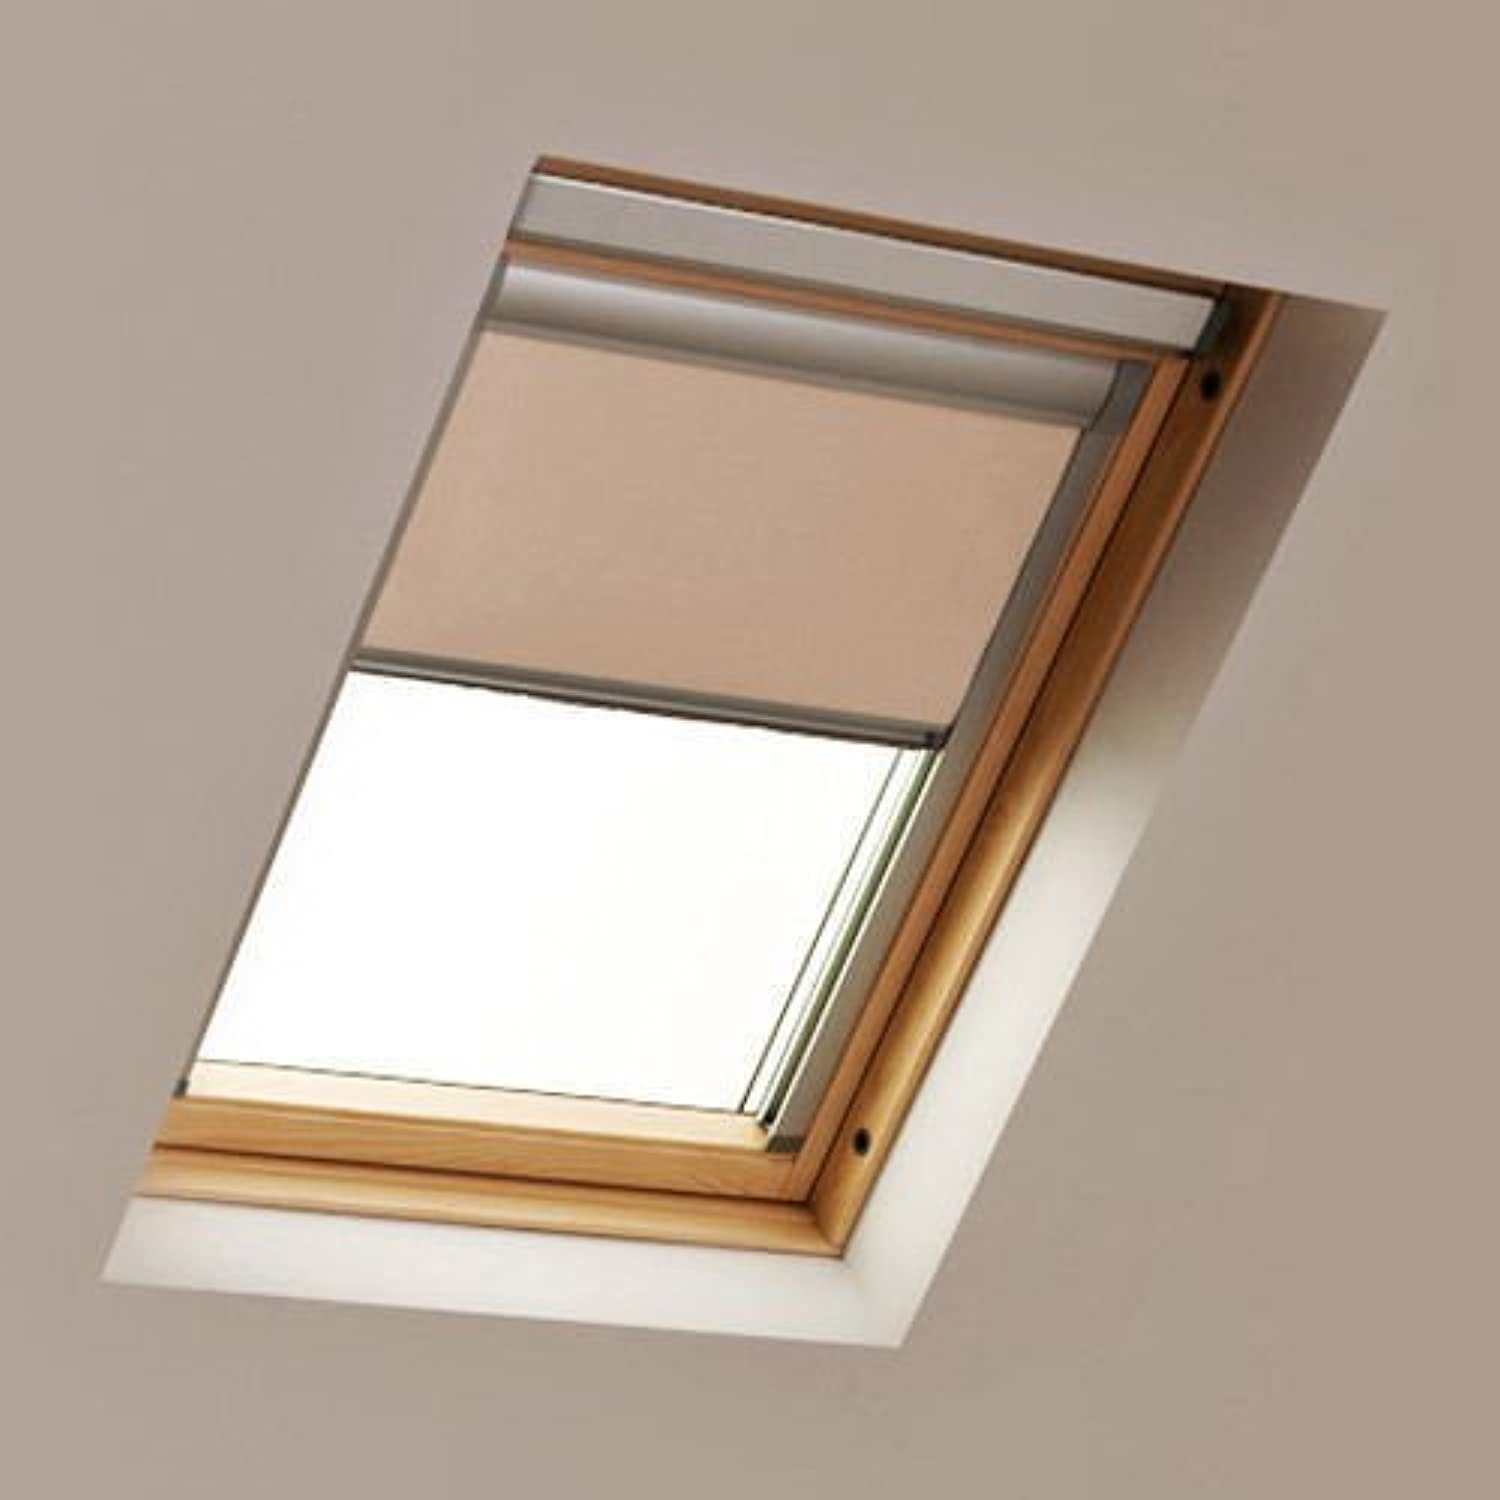 Blackout roller roof blinds for ggl 206 velux windows for Velux window shades